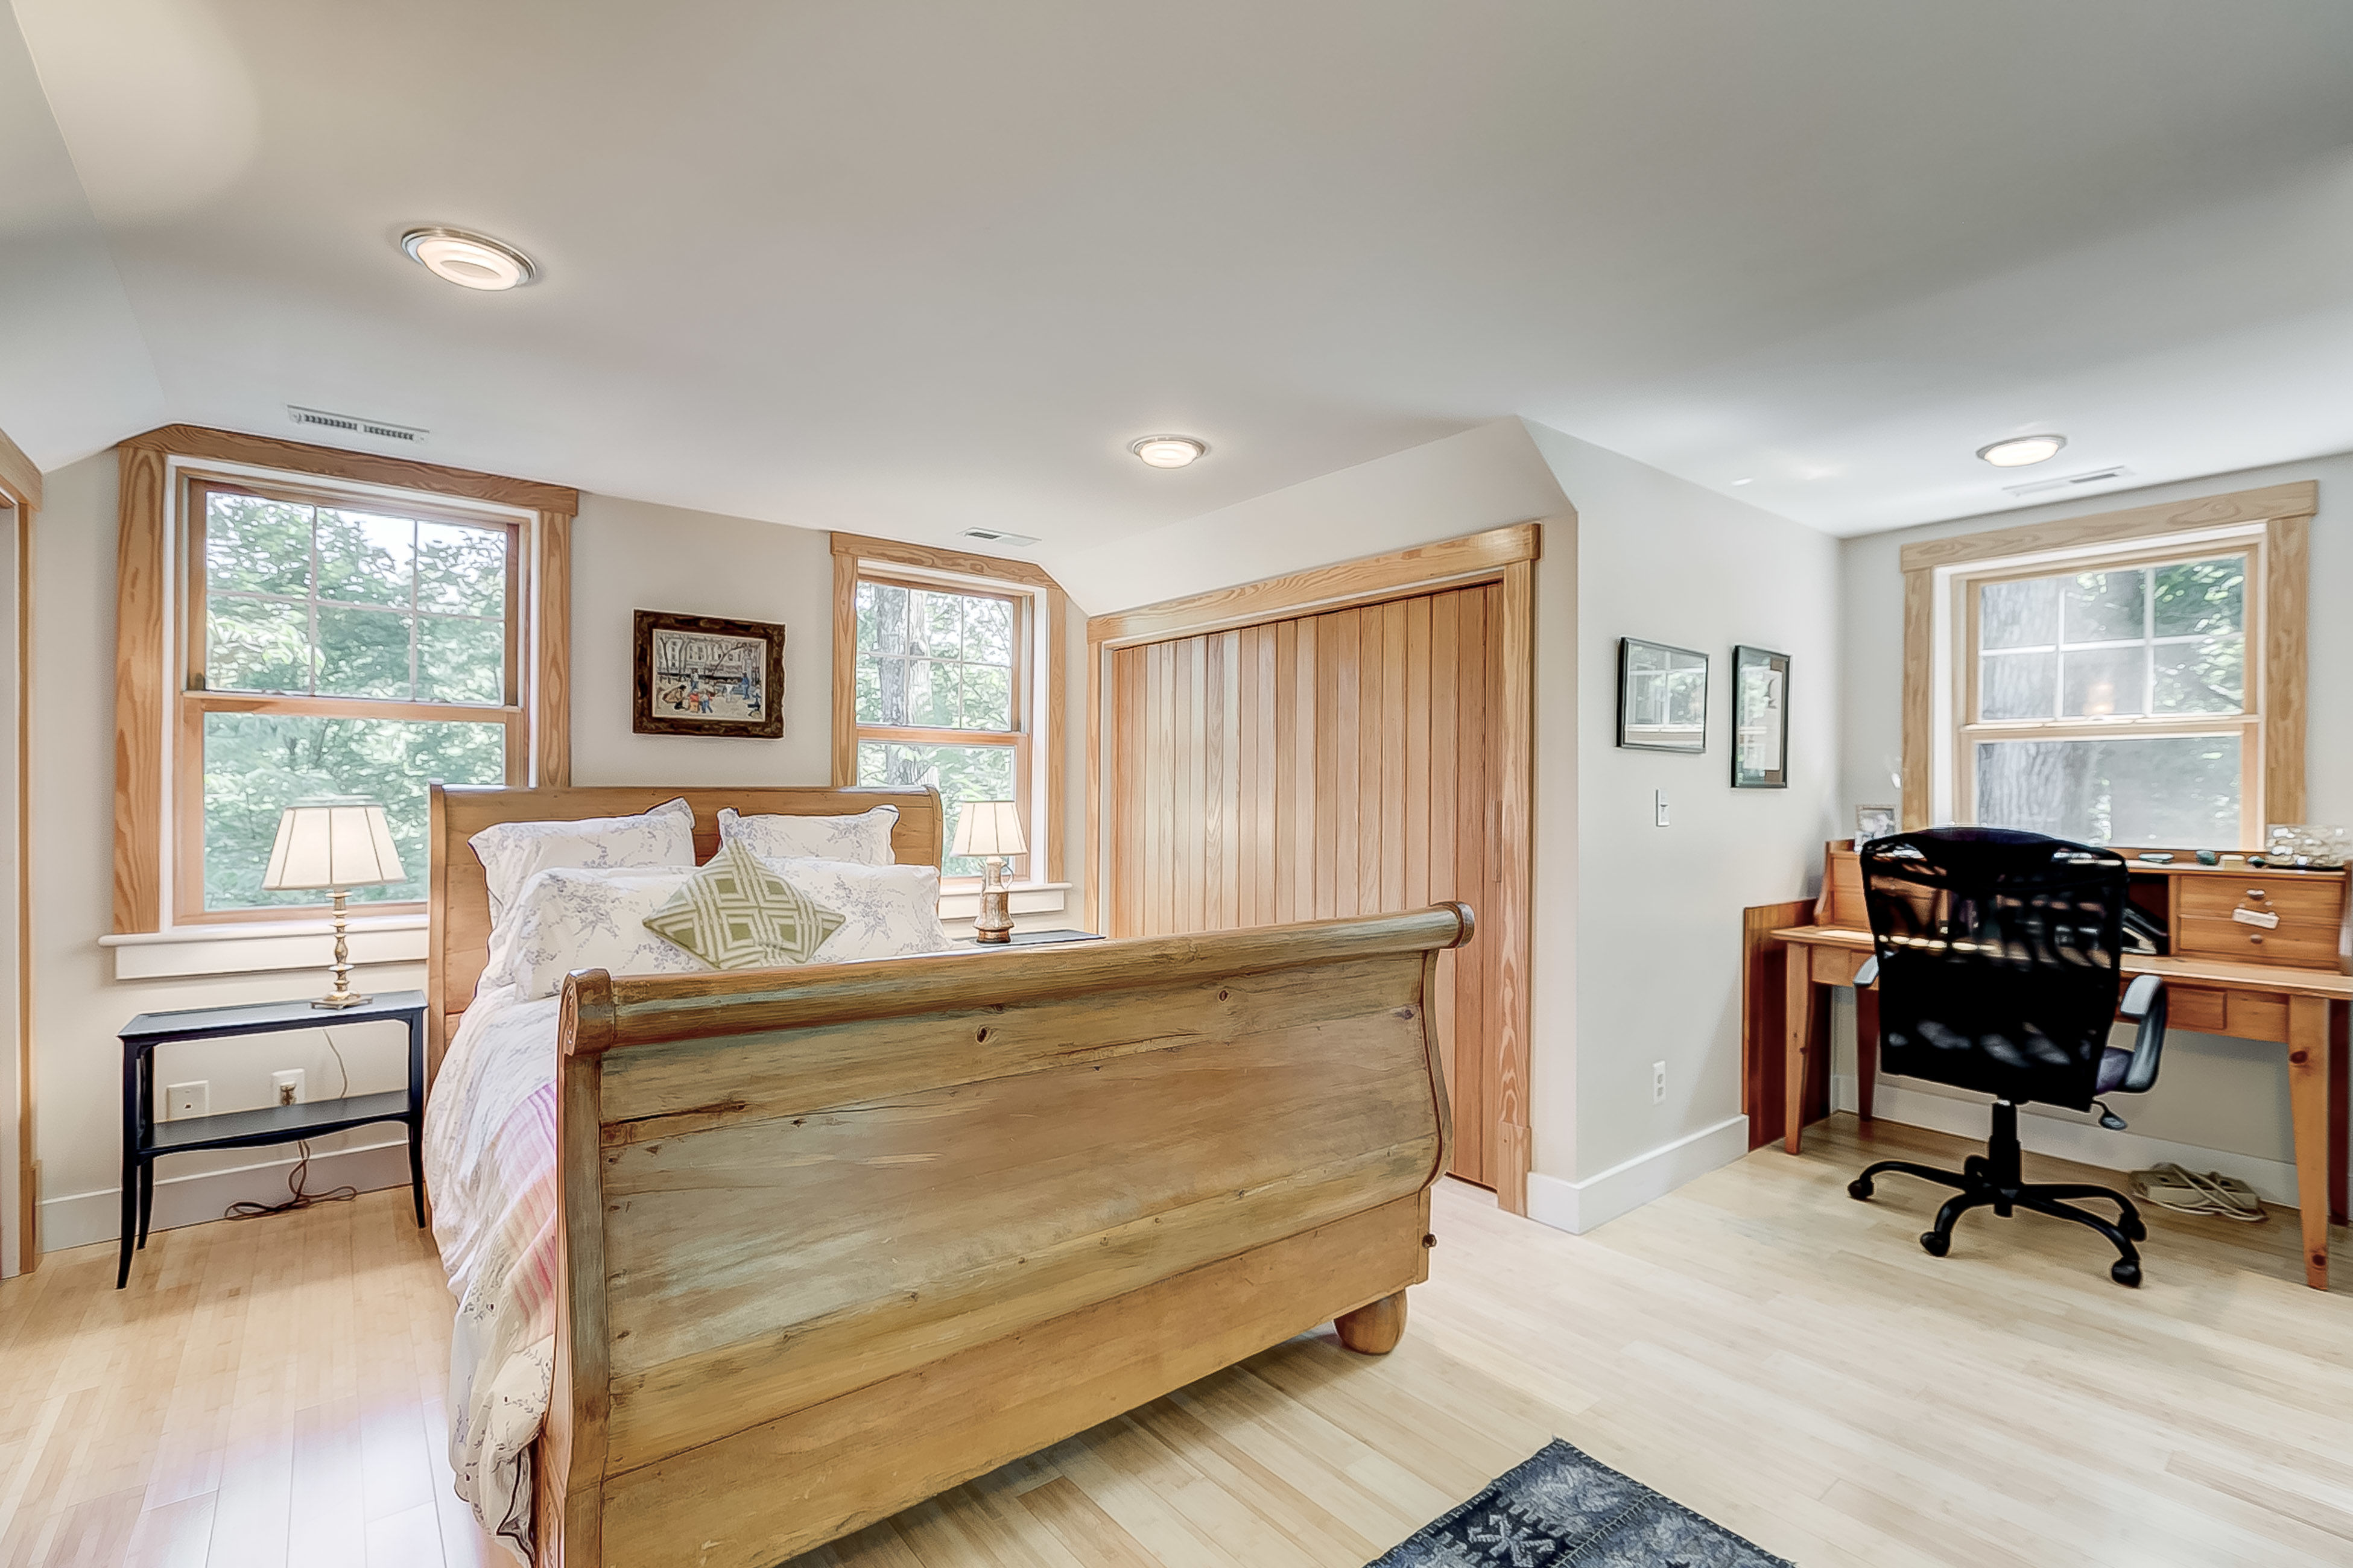 value those solid wood accordian doors from way back when